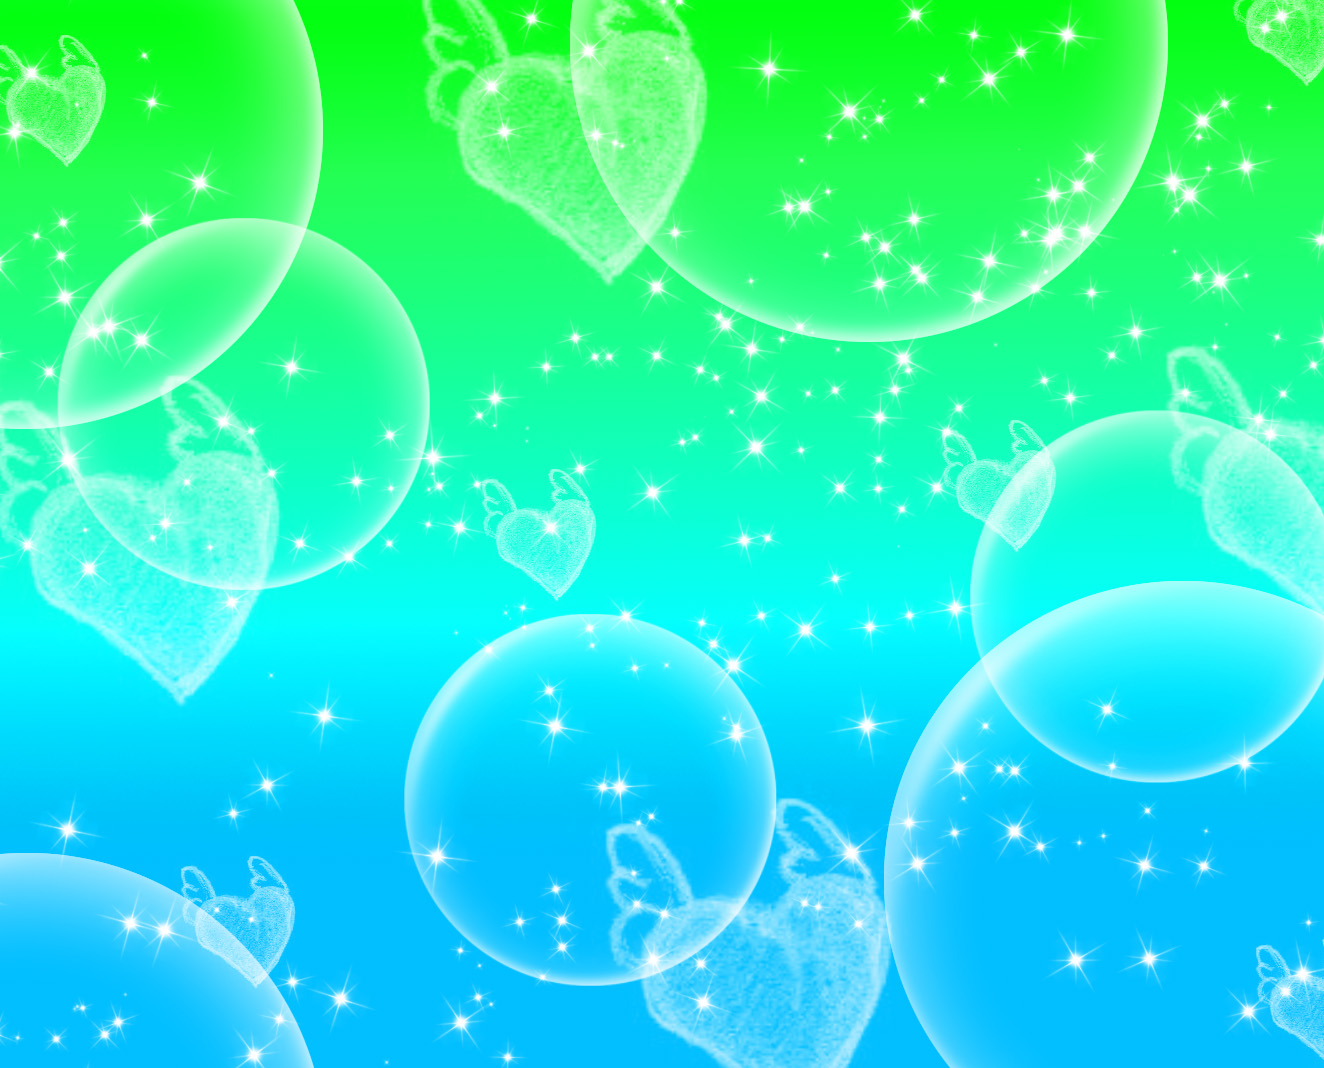 kawaii charm images green and blue hd wallpaper and background photos